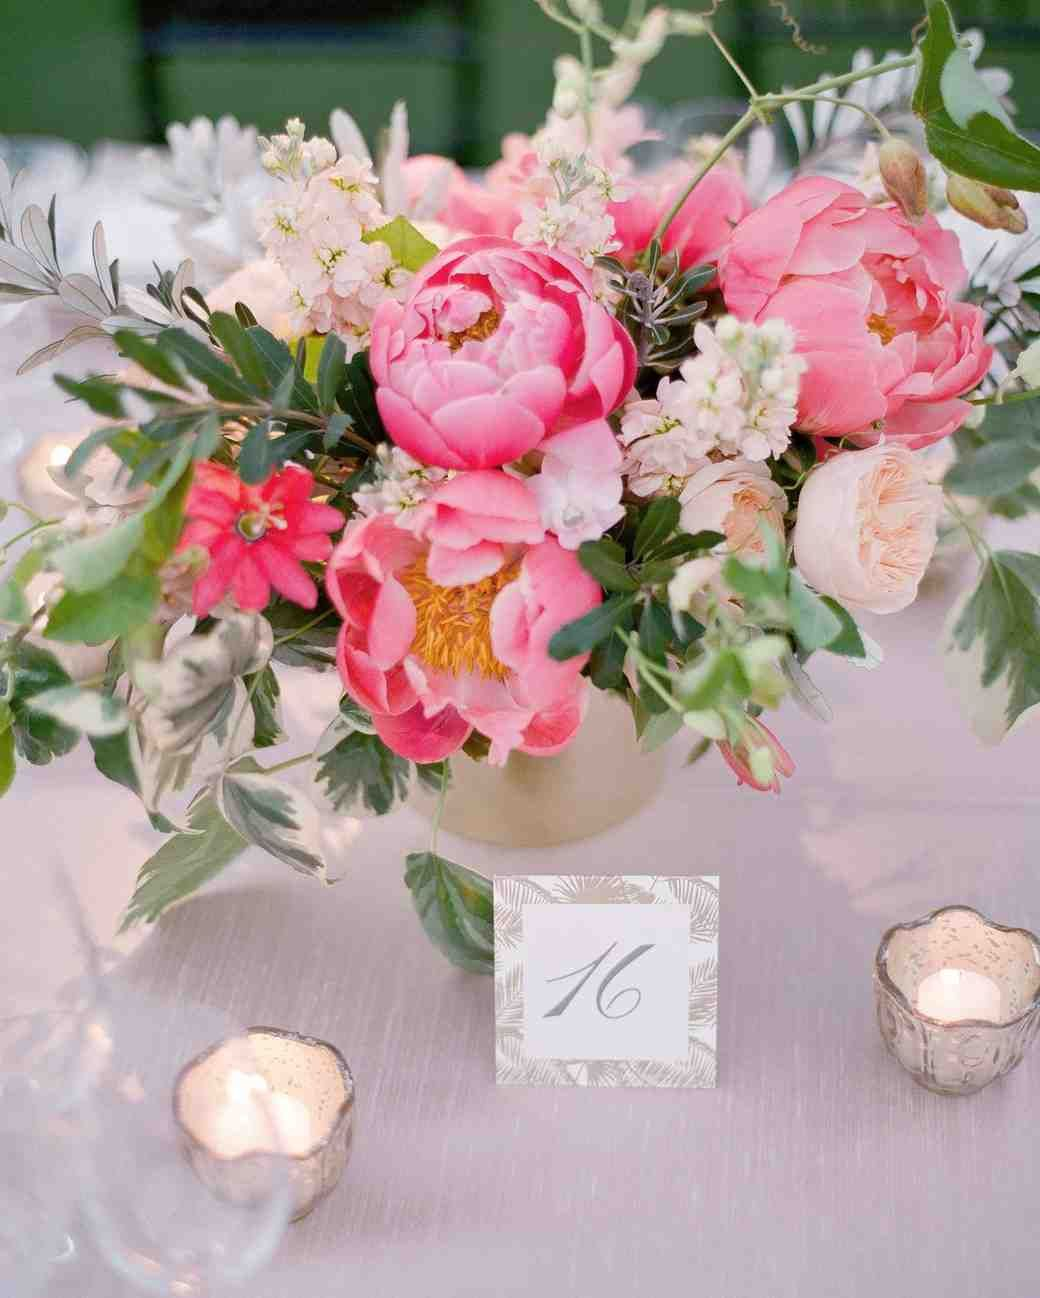 Summer Wedding Centerpiece Ideas: A Casual, Outdoor Wedding In Palm Springs With A Black-Tie